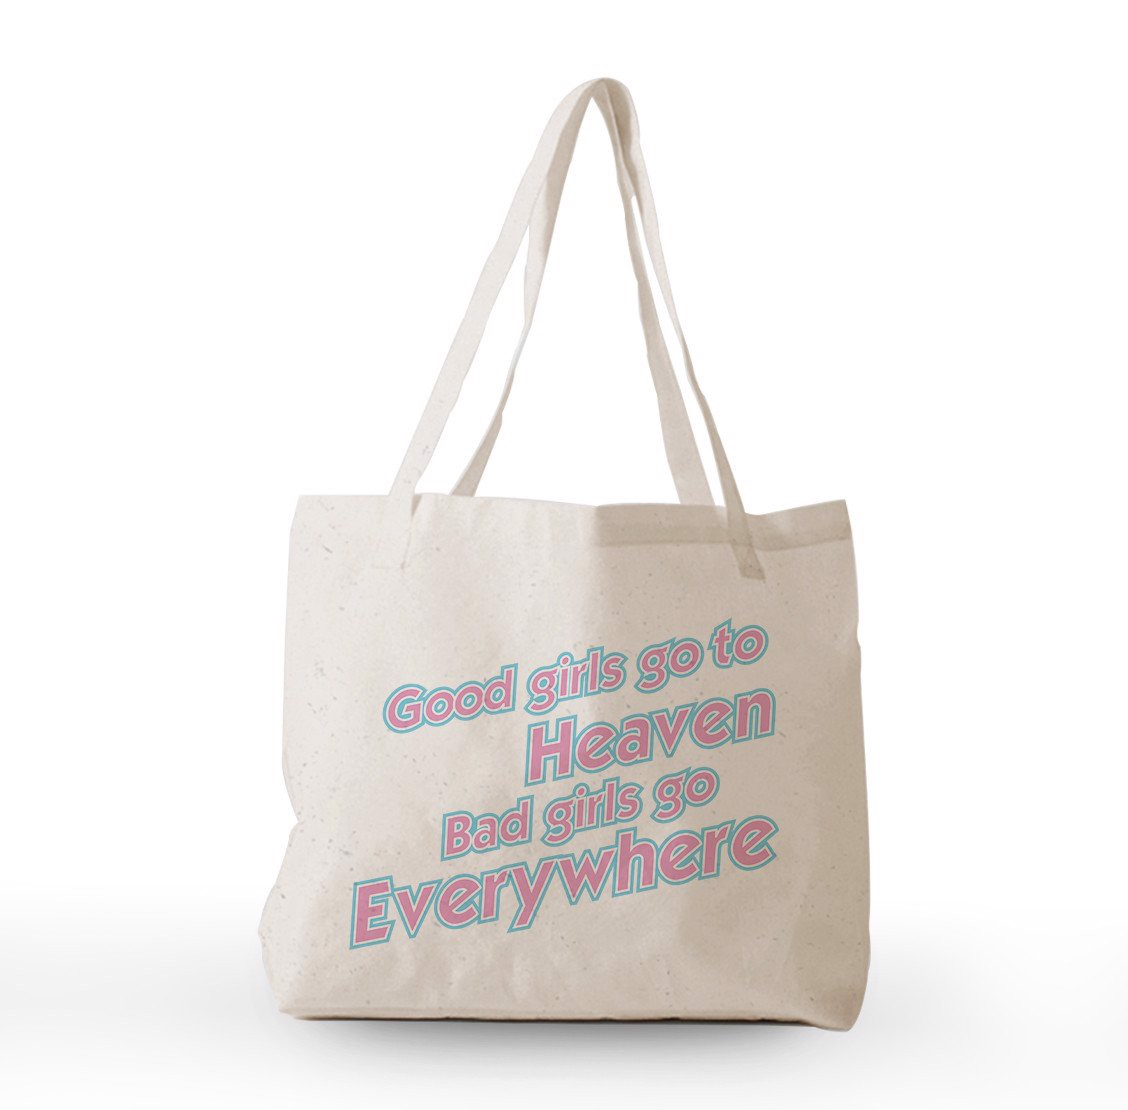 Tote Bag - Good girls go to heaven